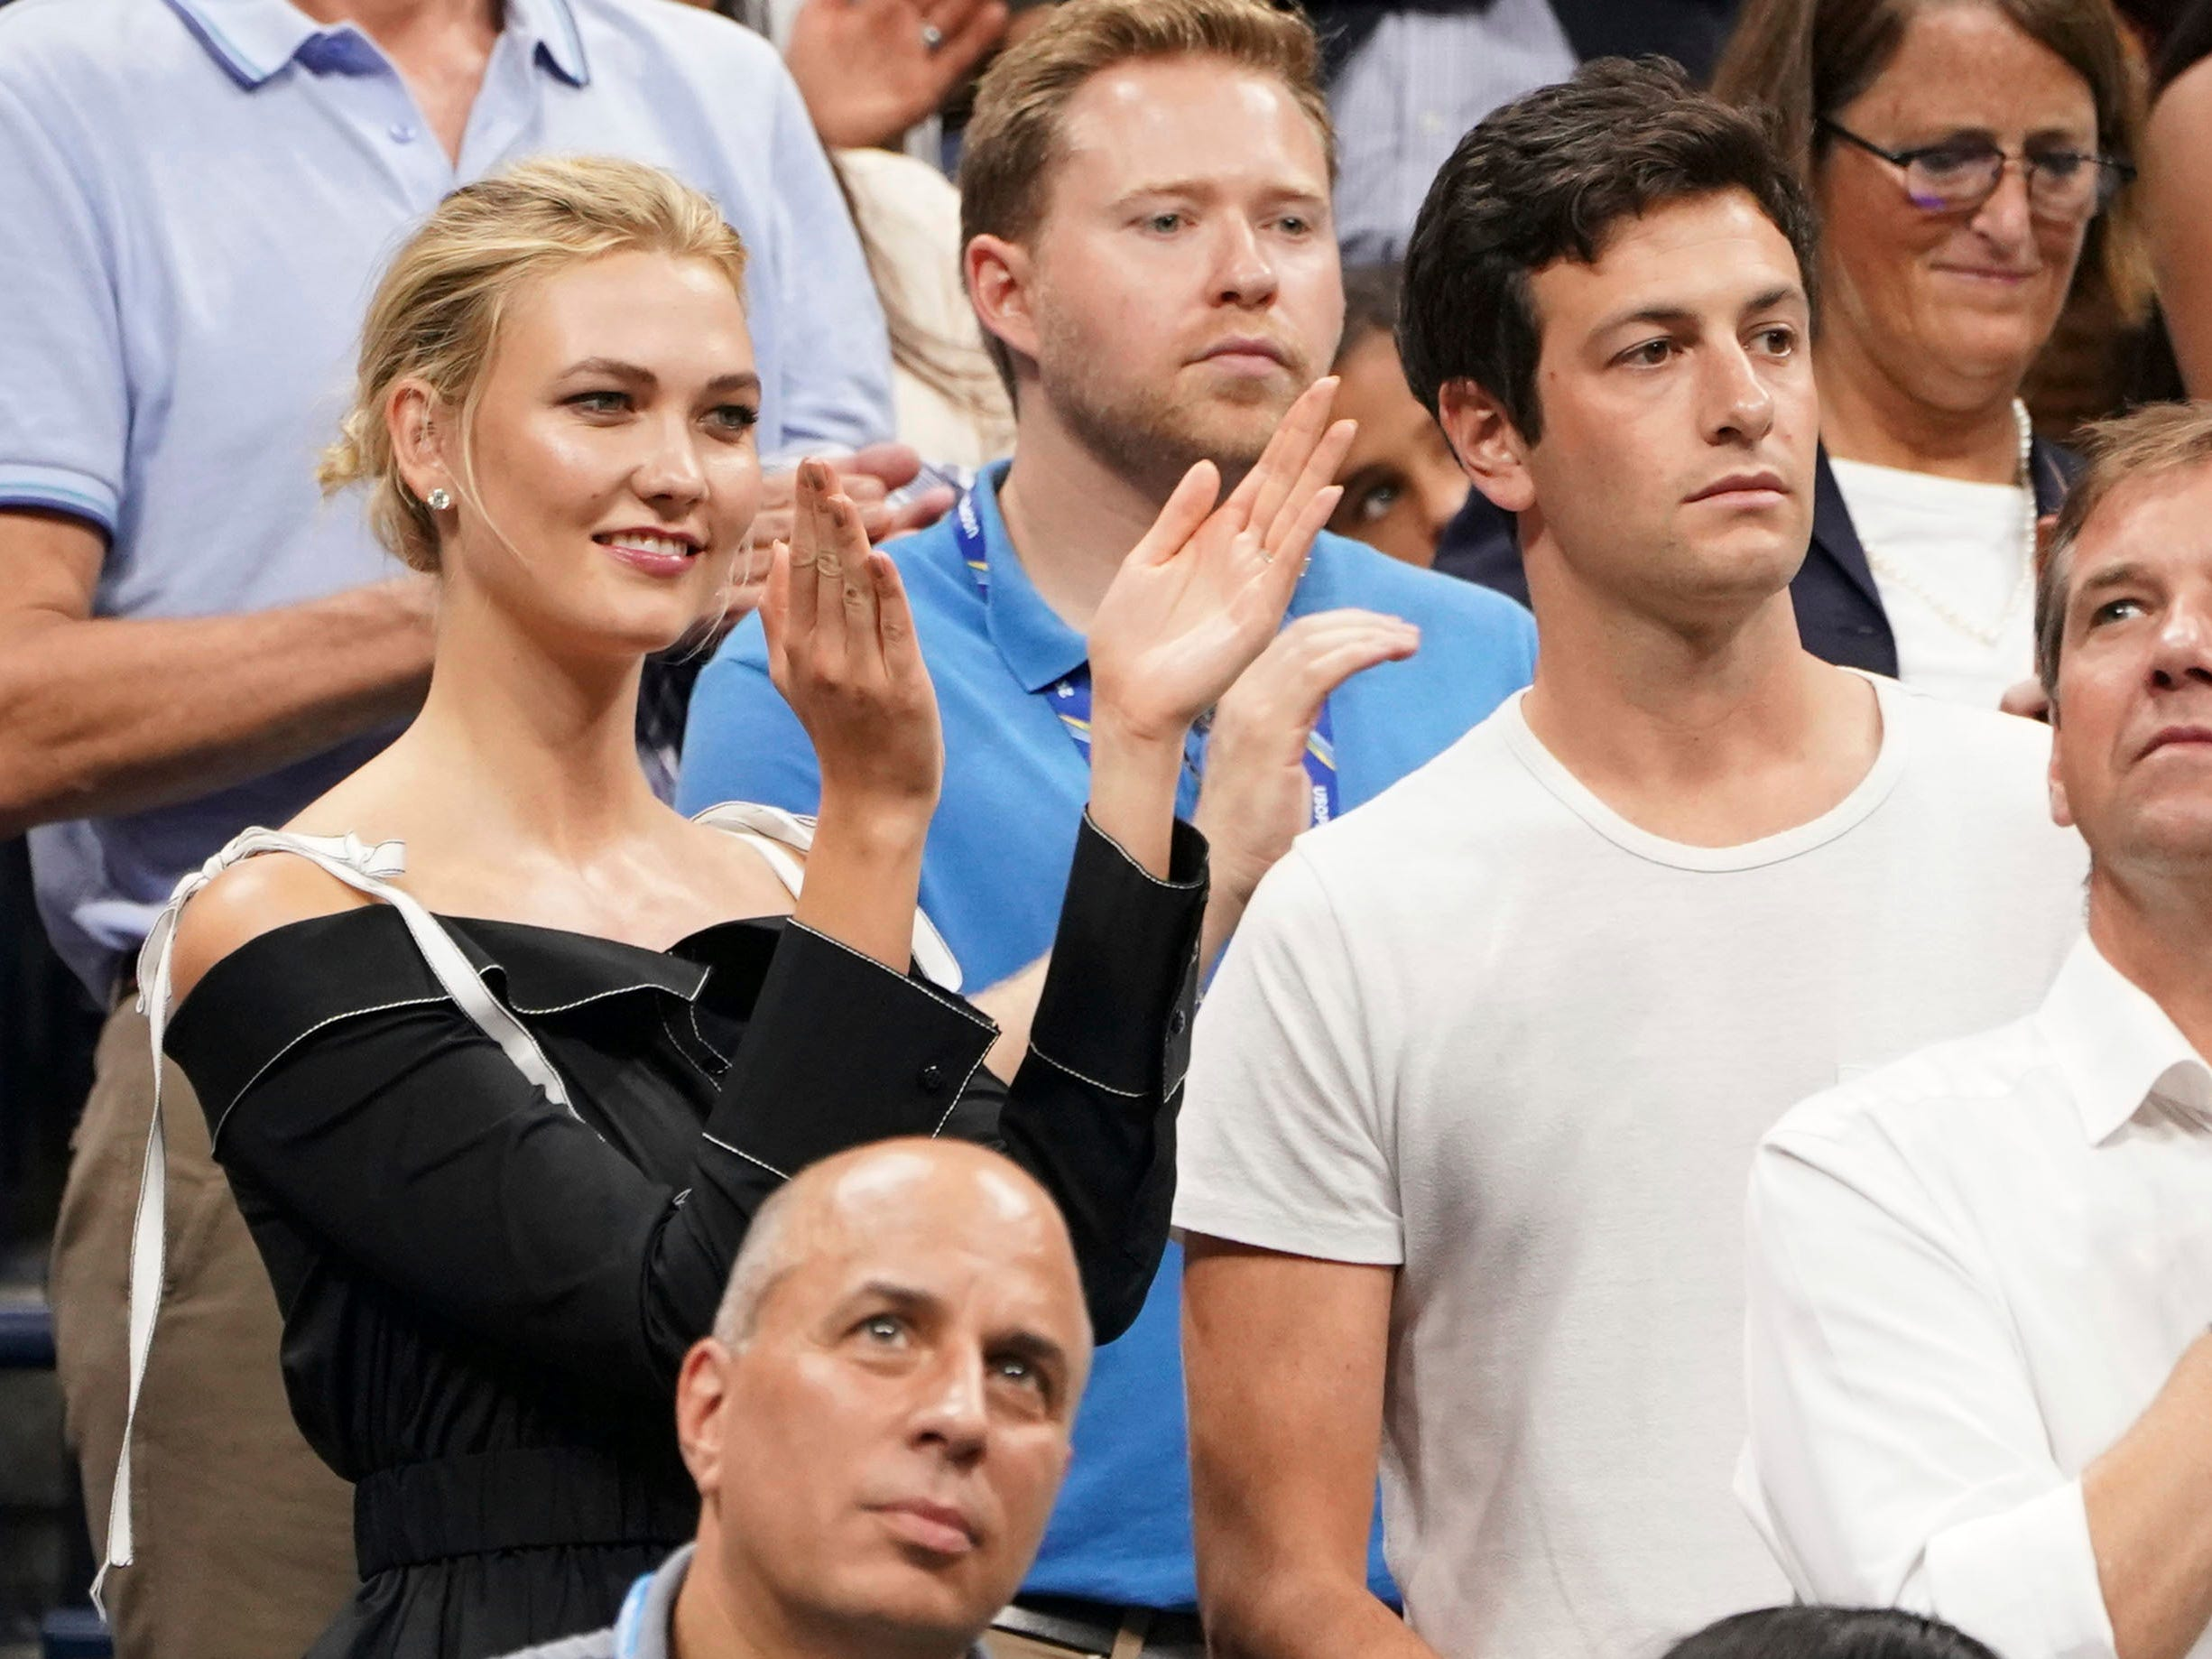 Model Karlie Kloss, left, and fiance Joshua Kushner, brother of Jared Kushner, attend the women's semifinals matches at Arthur Ashe Stadium.